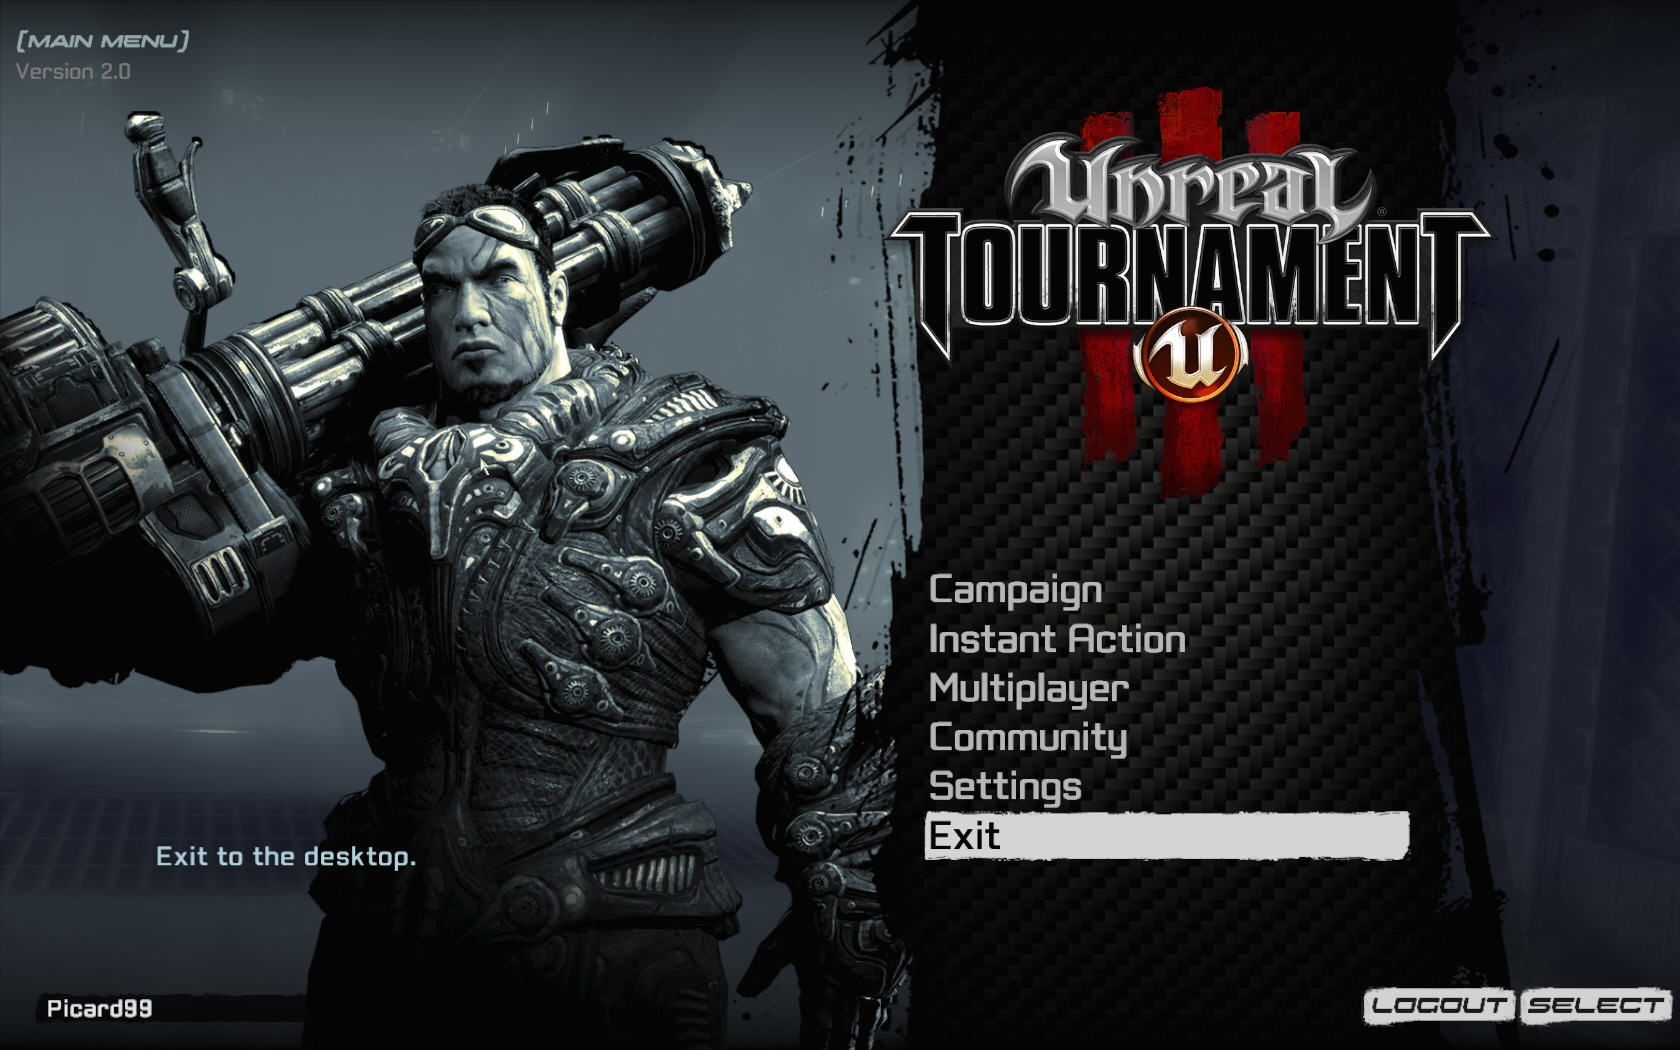 Unreal Tournament III Windows Main menu (version 2.0).